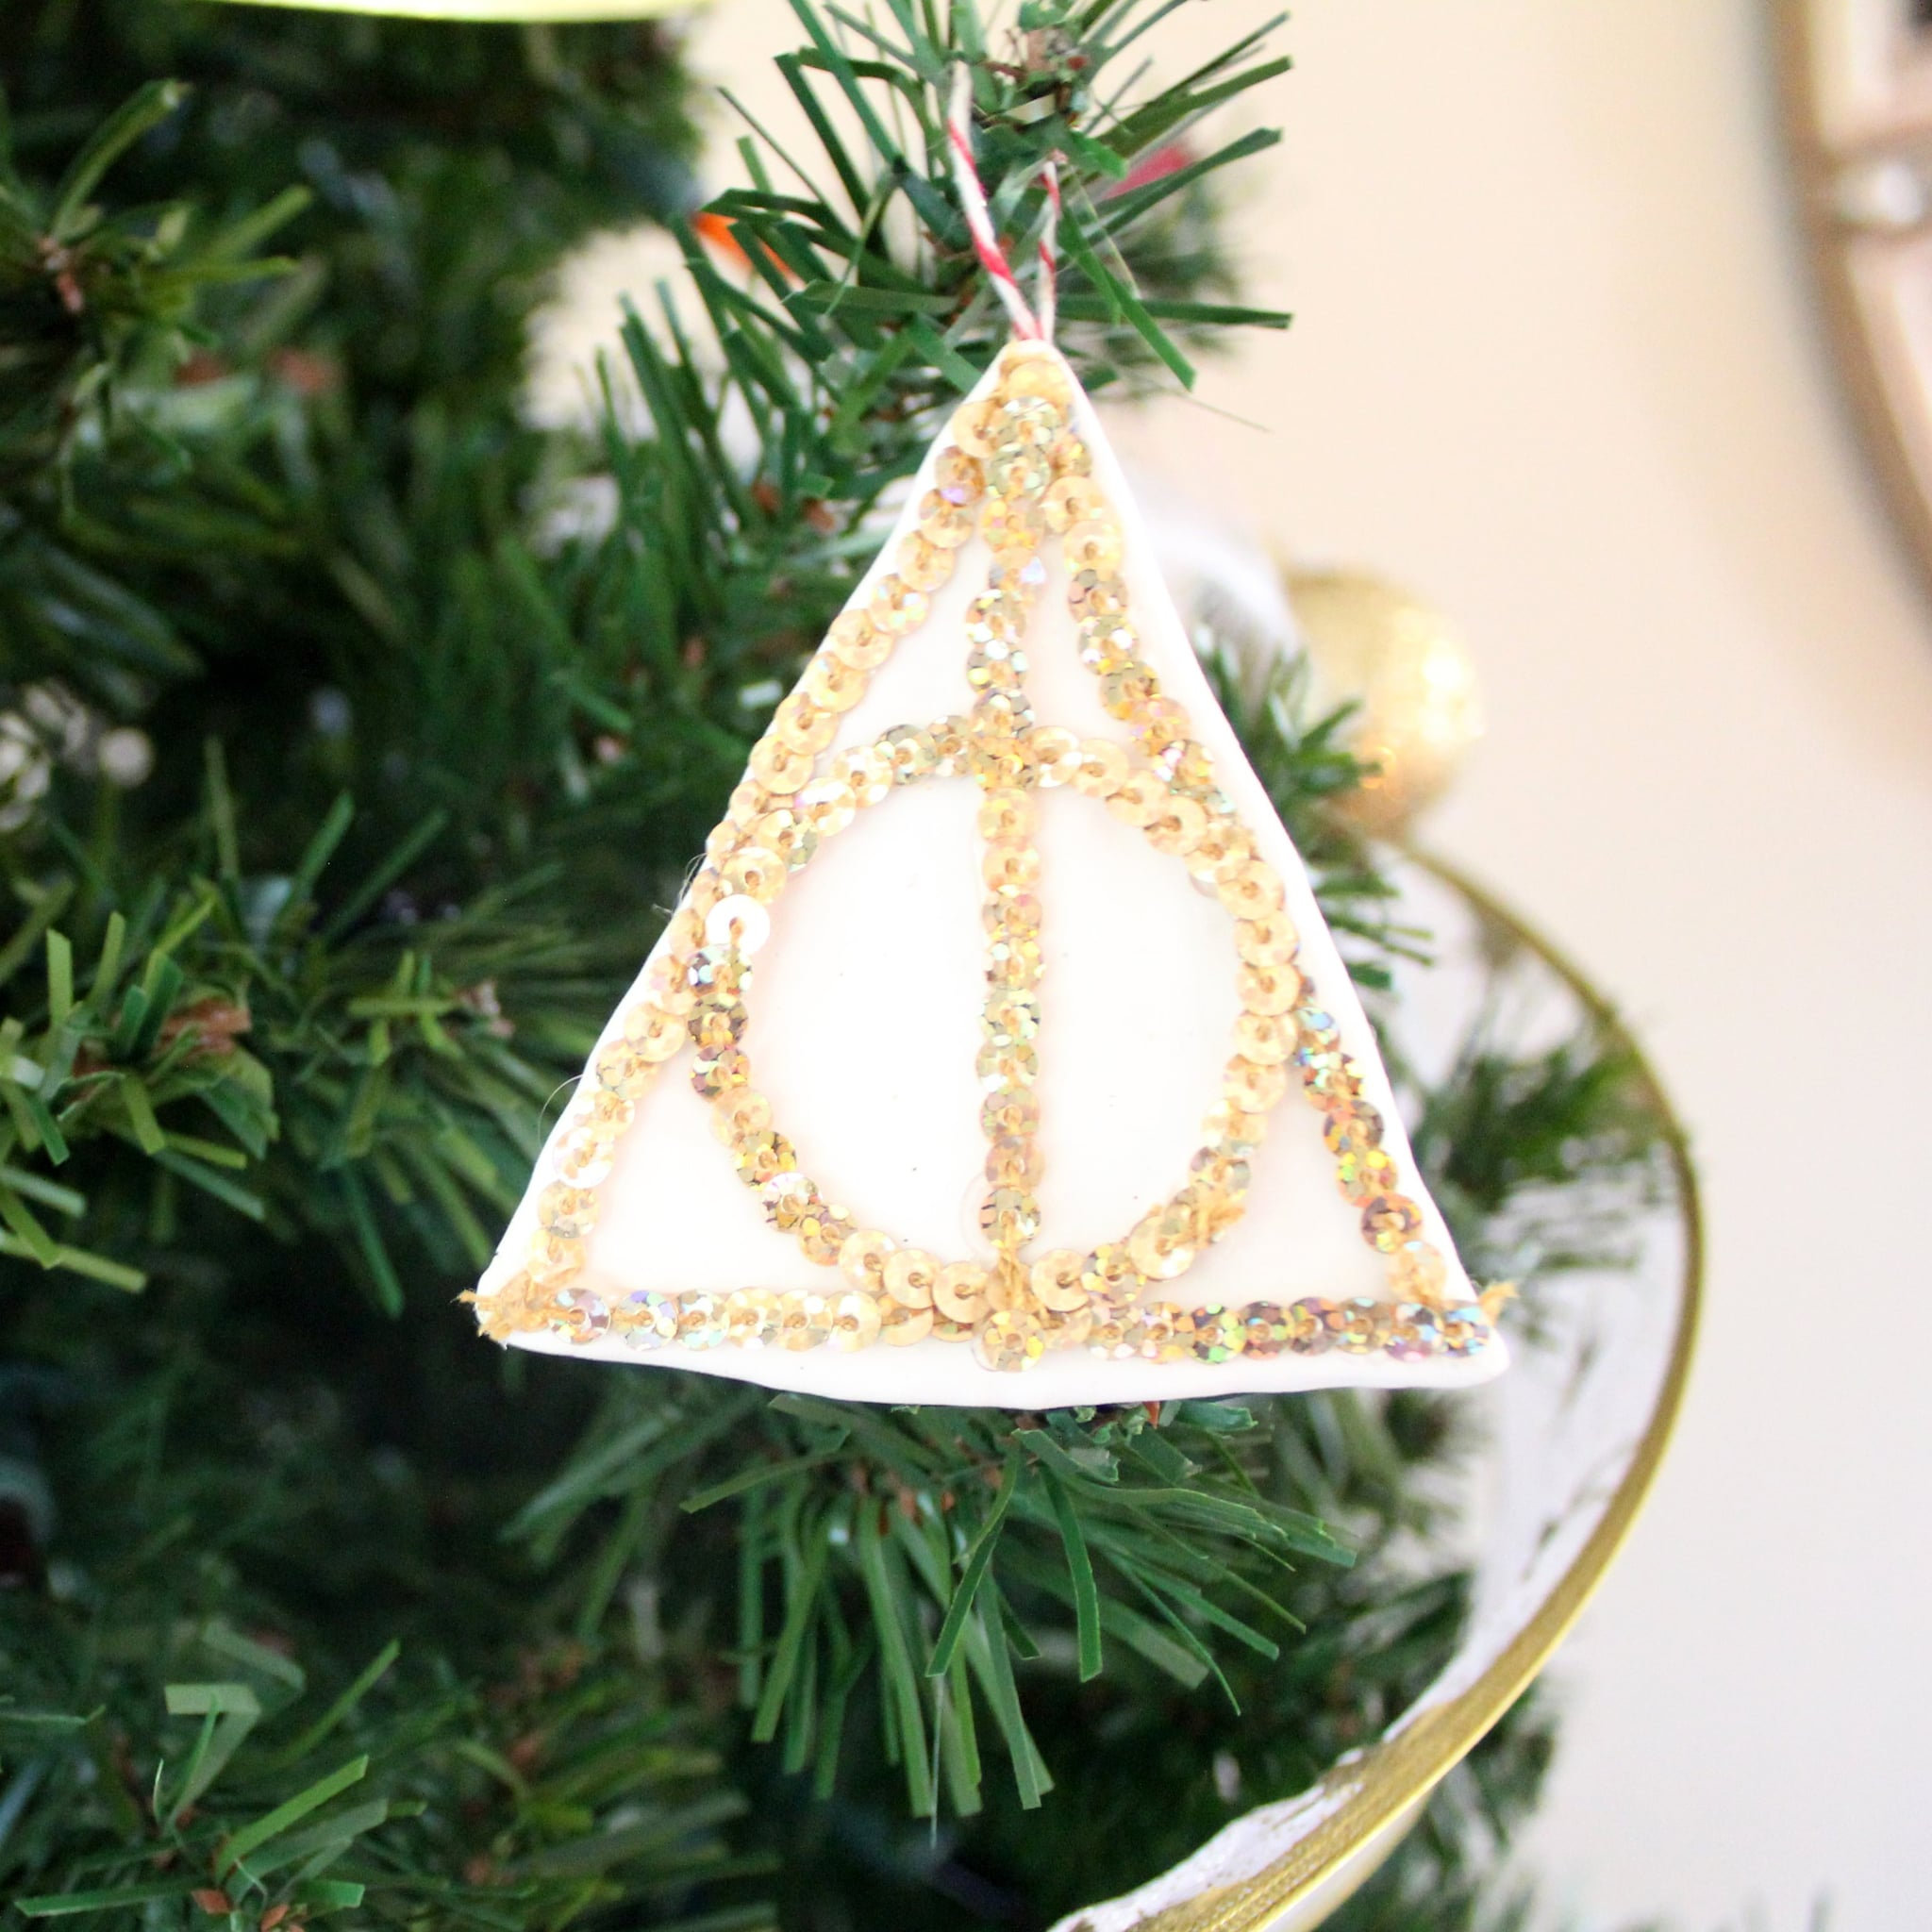 diy harry potter ornaments popsugar smart living - Harry Potter Christmas Decorations